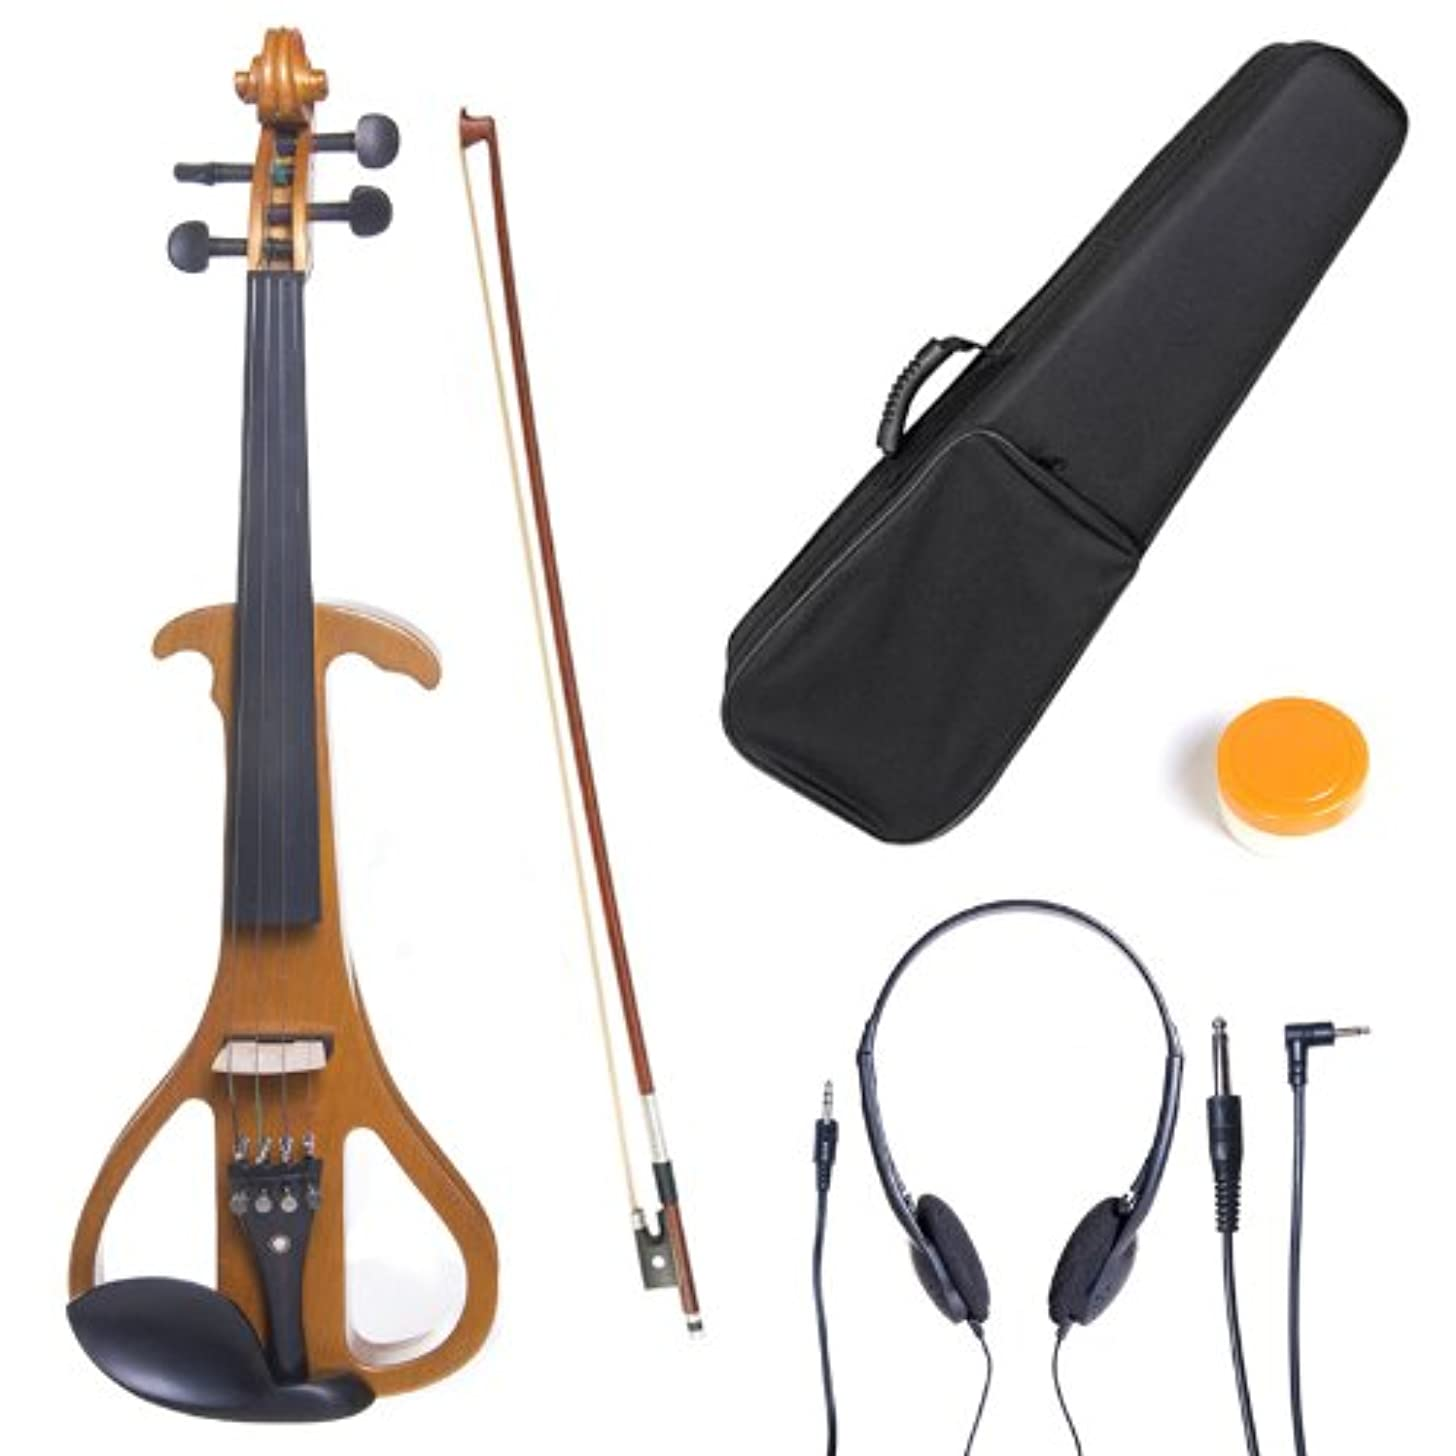 Cecilio 4/4 CEVN-4Y Solid Wood Electric/Silent Violin with Ebony Fittings in Style 4 - Full Size - Yellow Maple Metallic